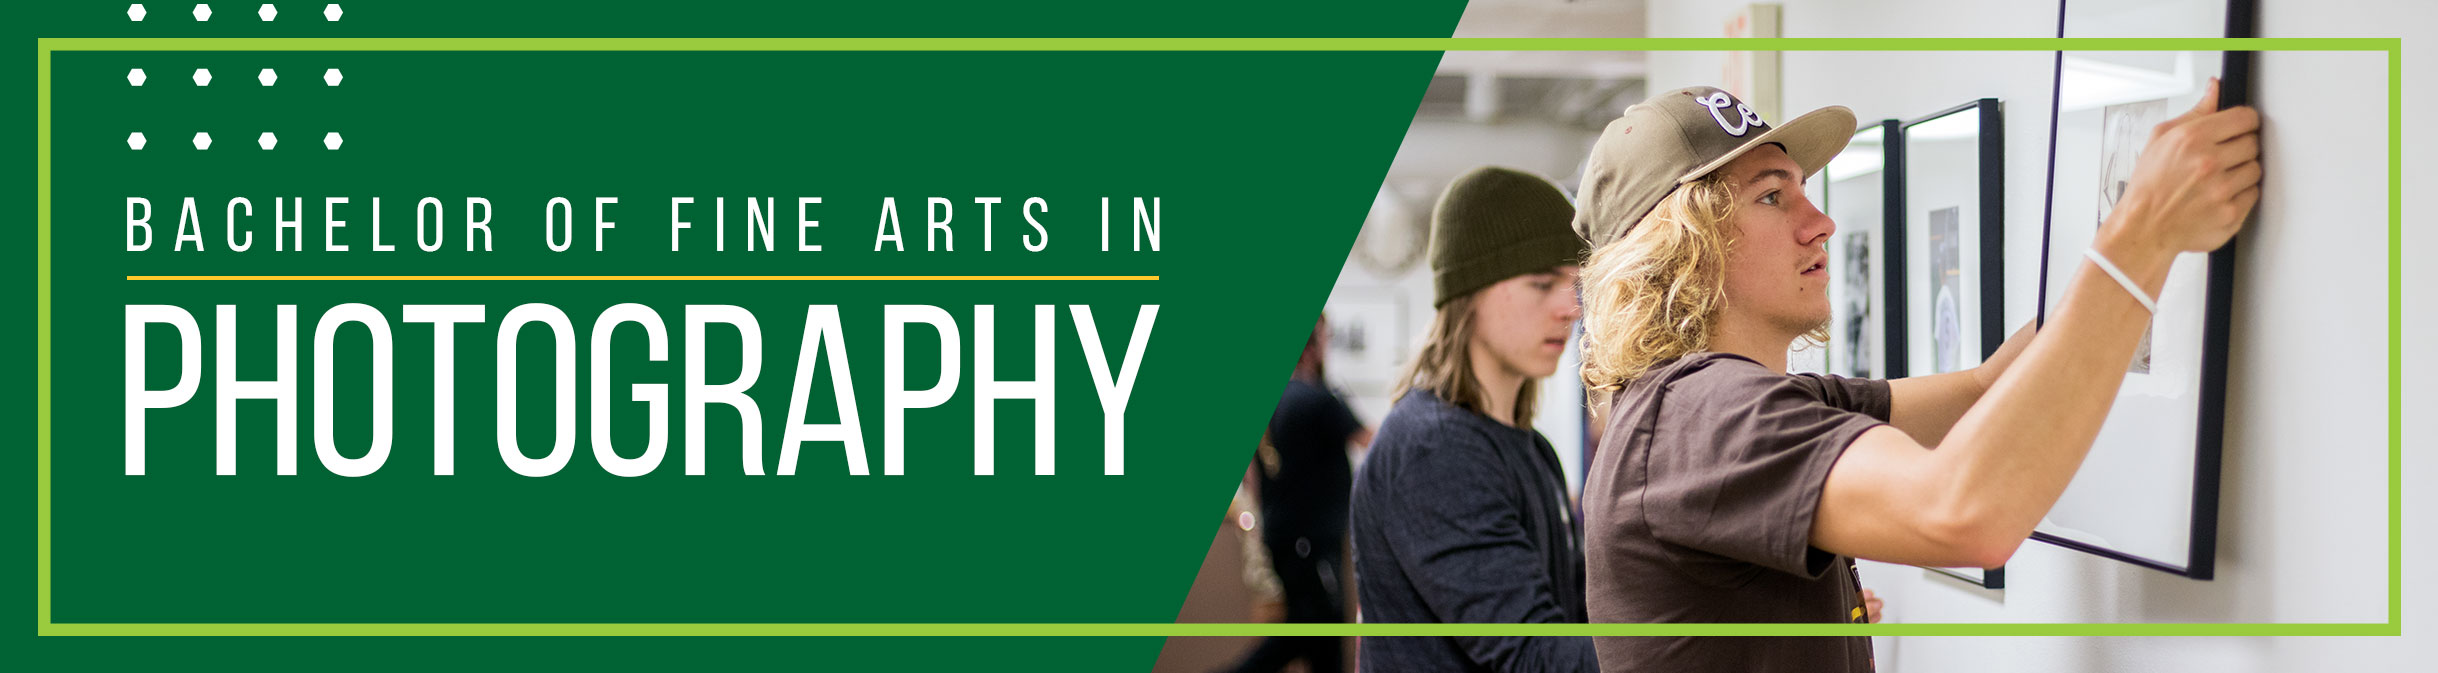 Bachelor of Fine Arts in Photography